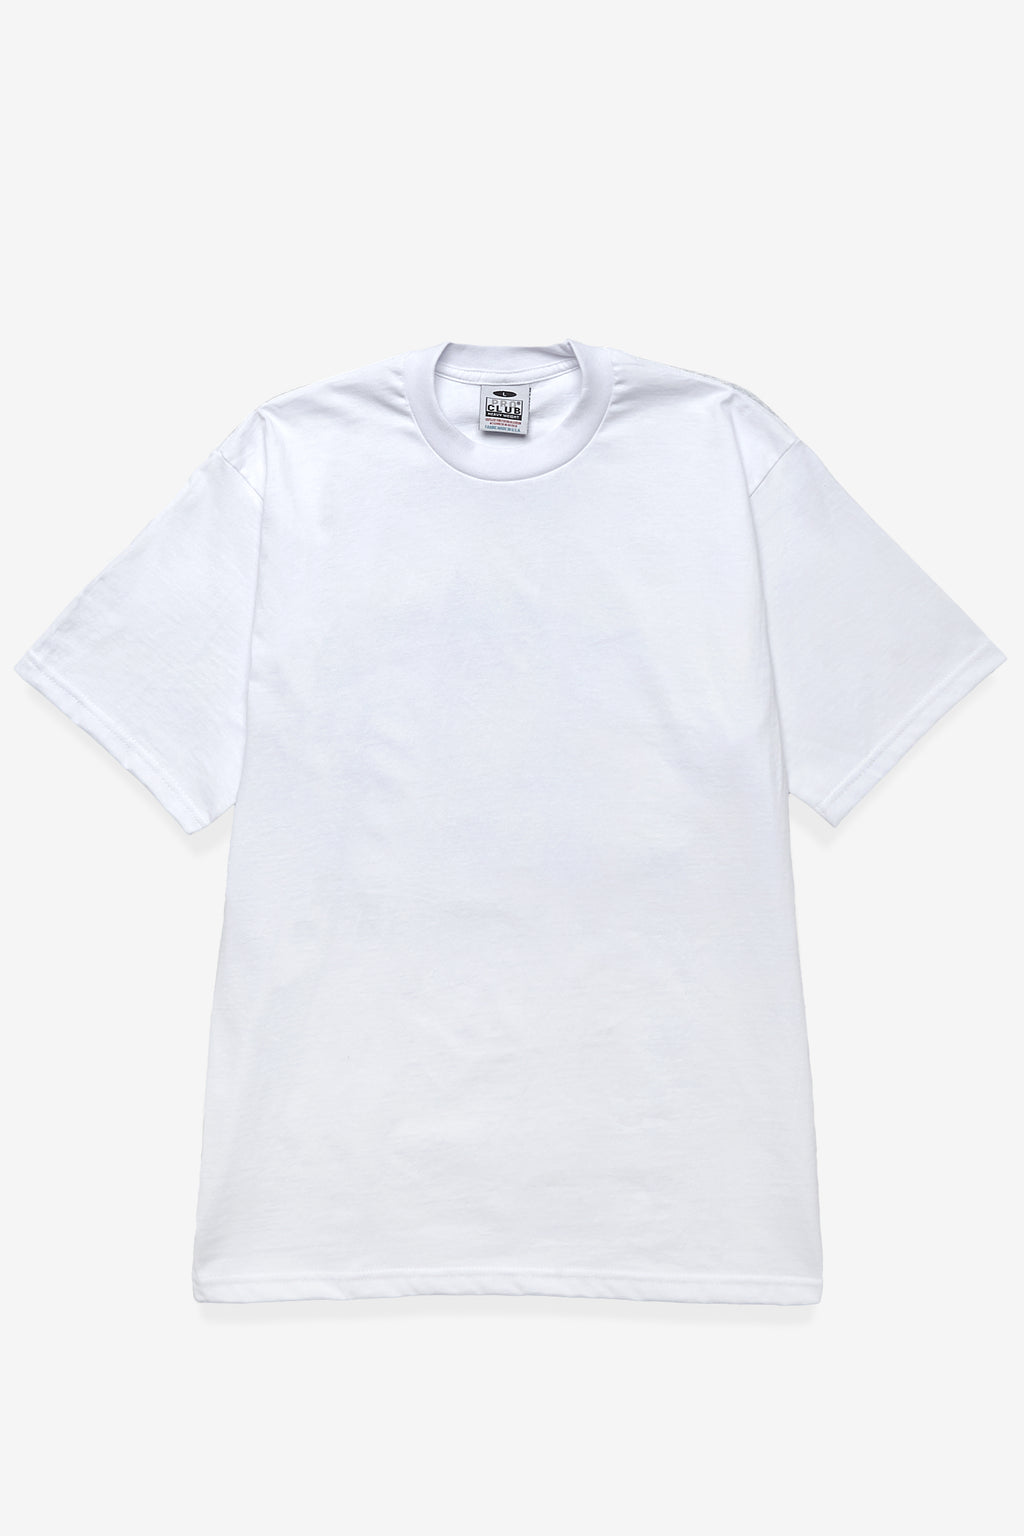 Pro Club - Heavyweight T-Shirt - White